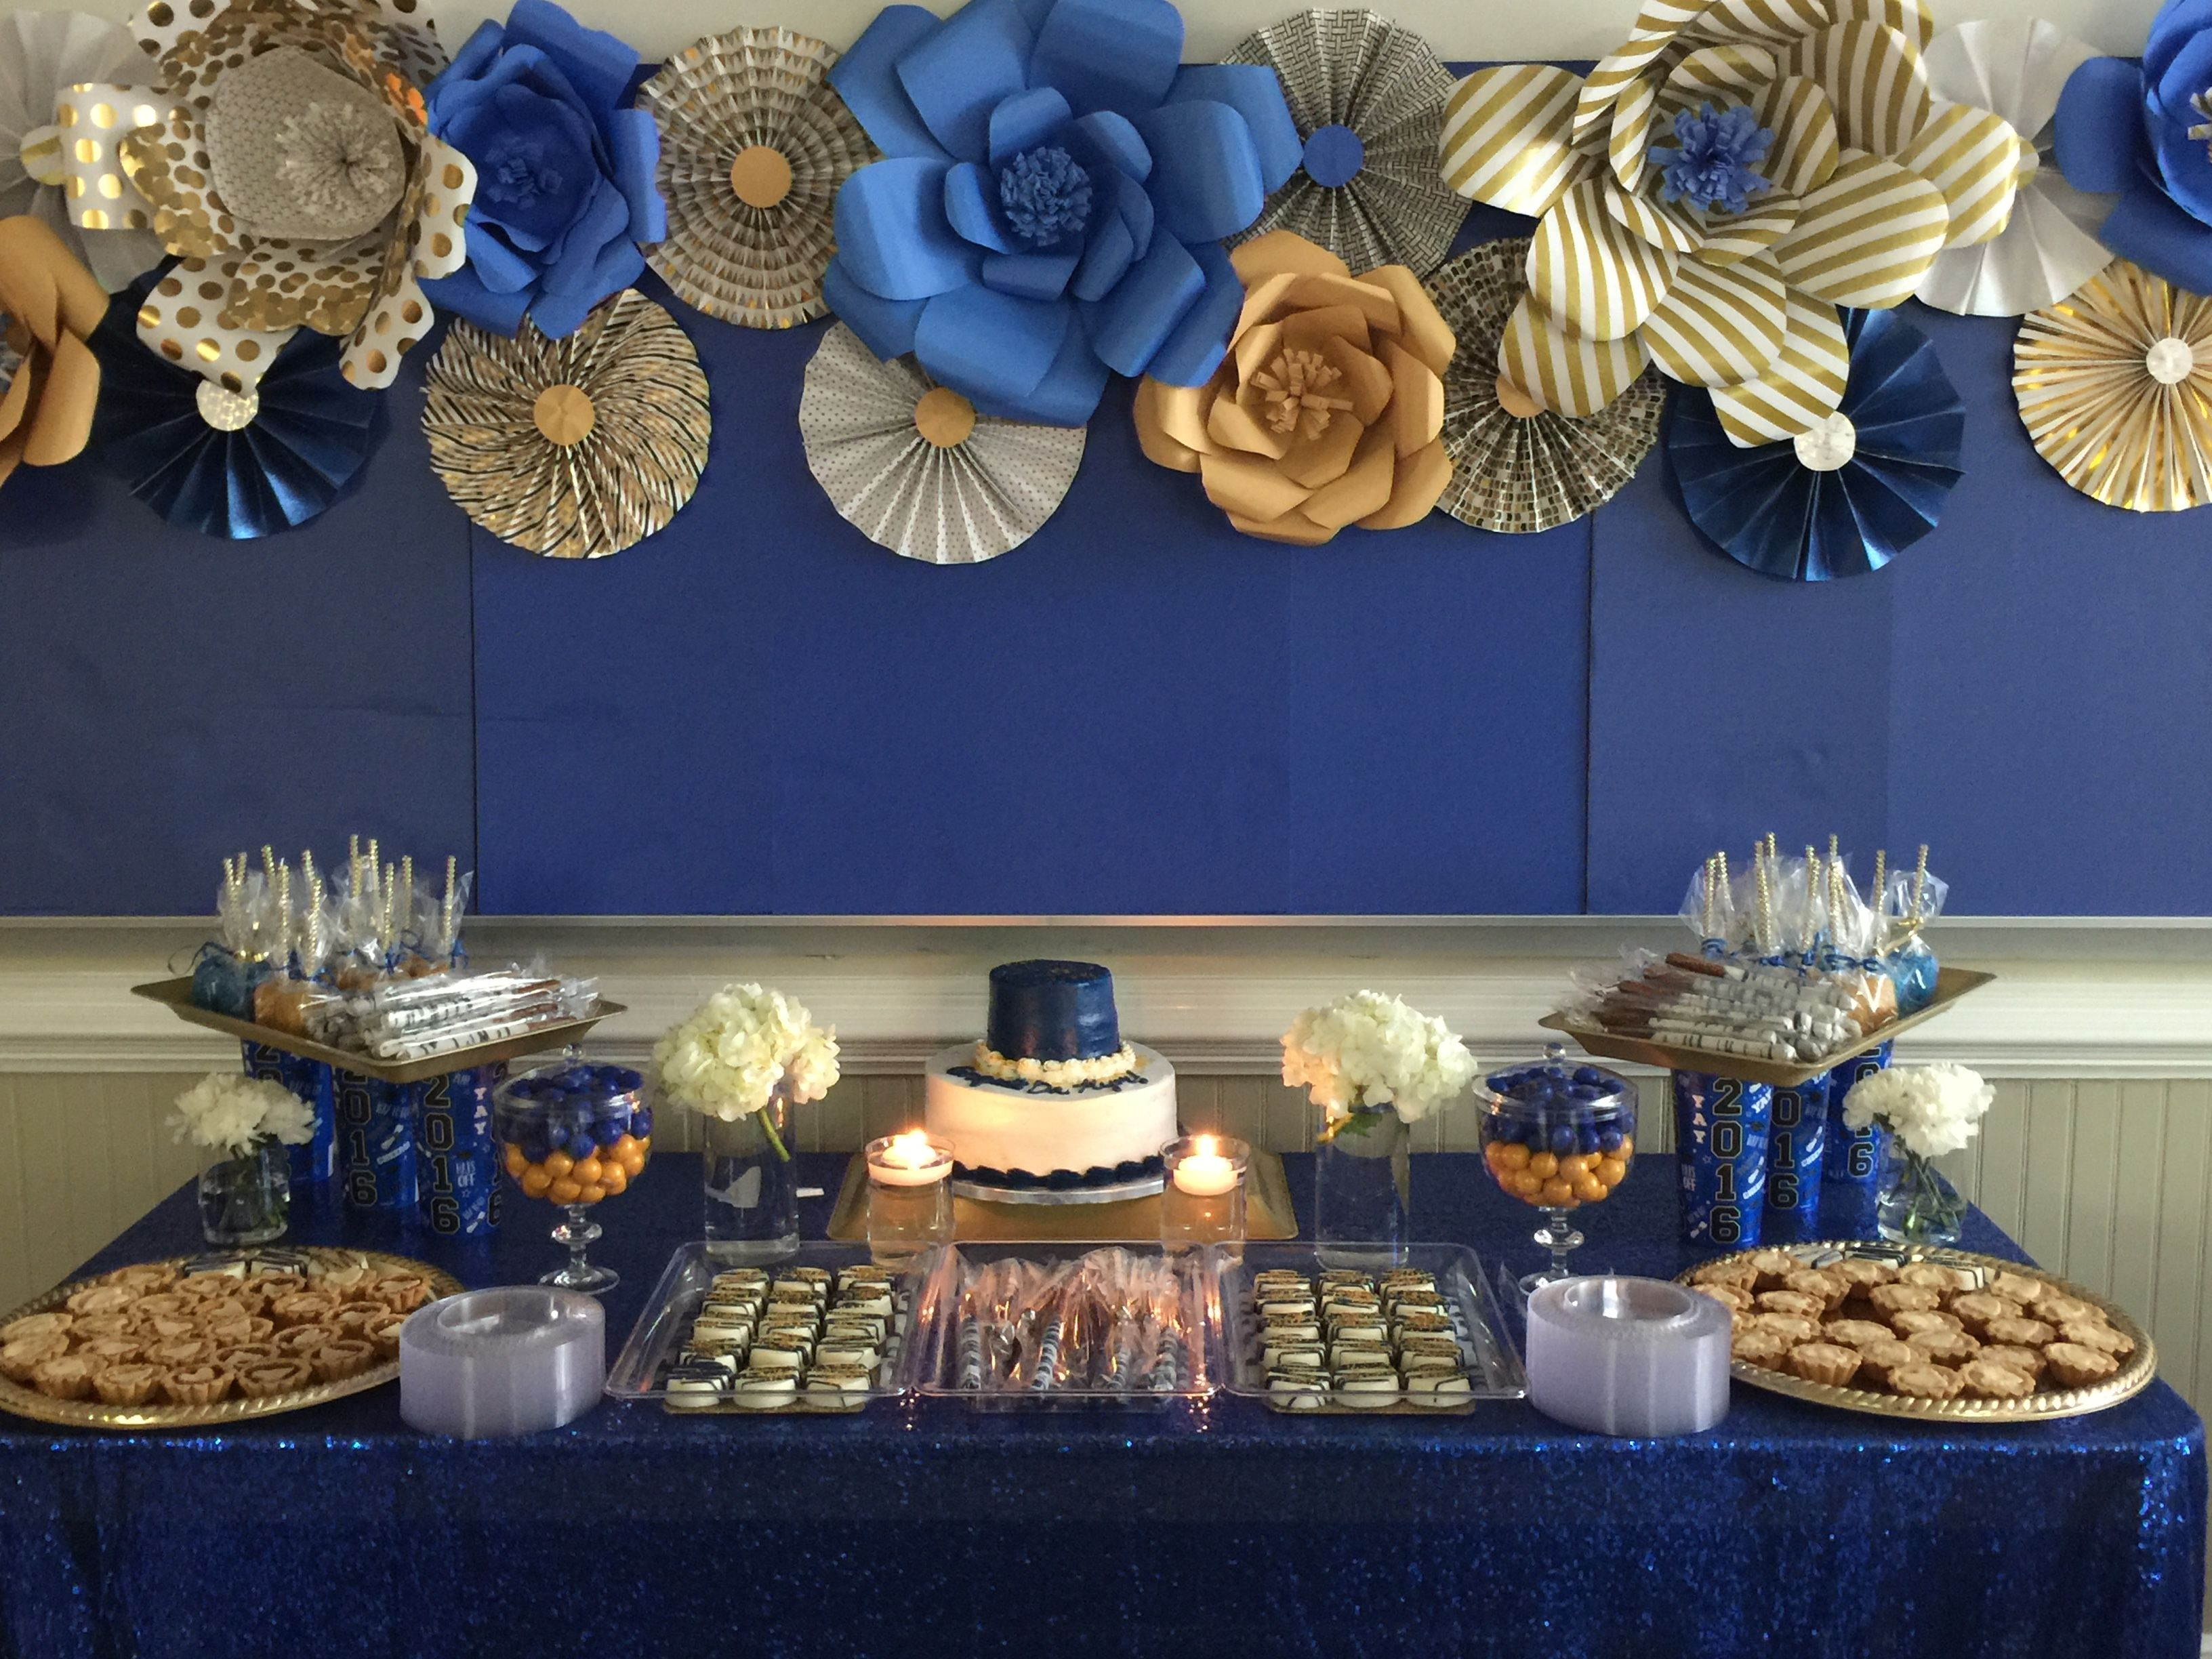 Royal blue and gold dessert table with paper flowers and fan as